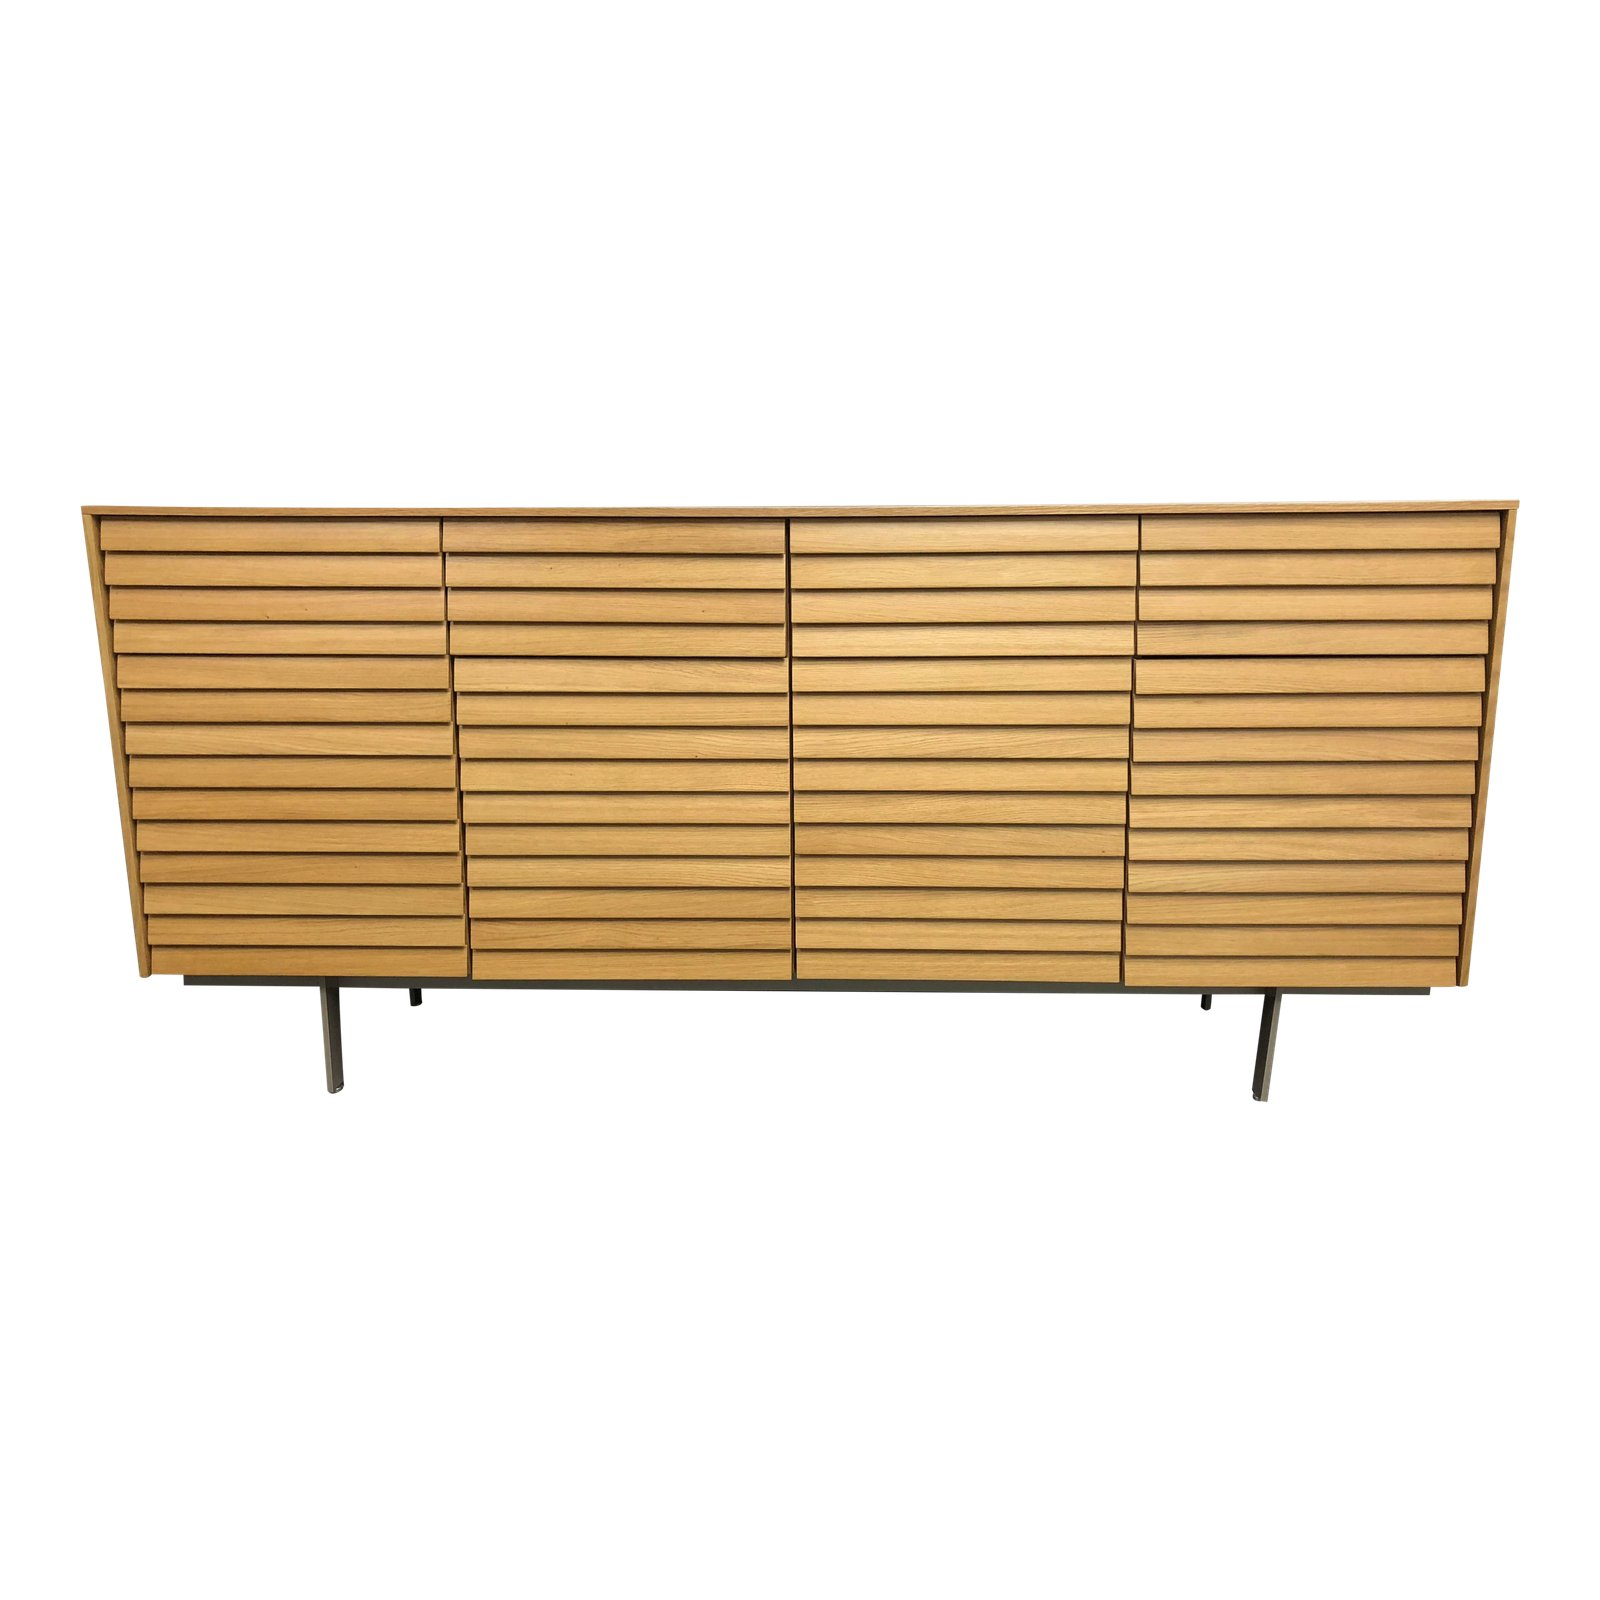 Line Credenza, Large - Design Within Reach - dwr.com